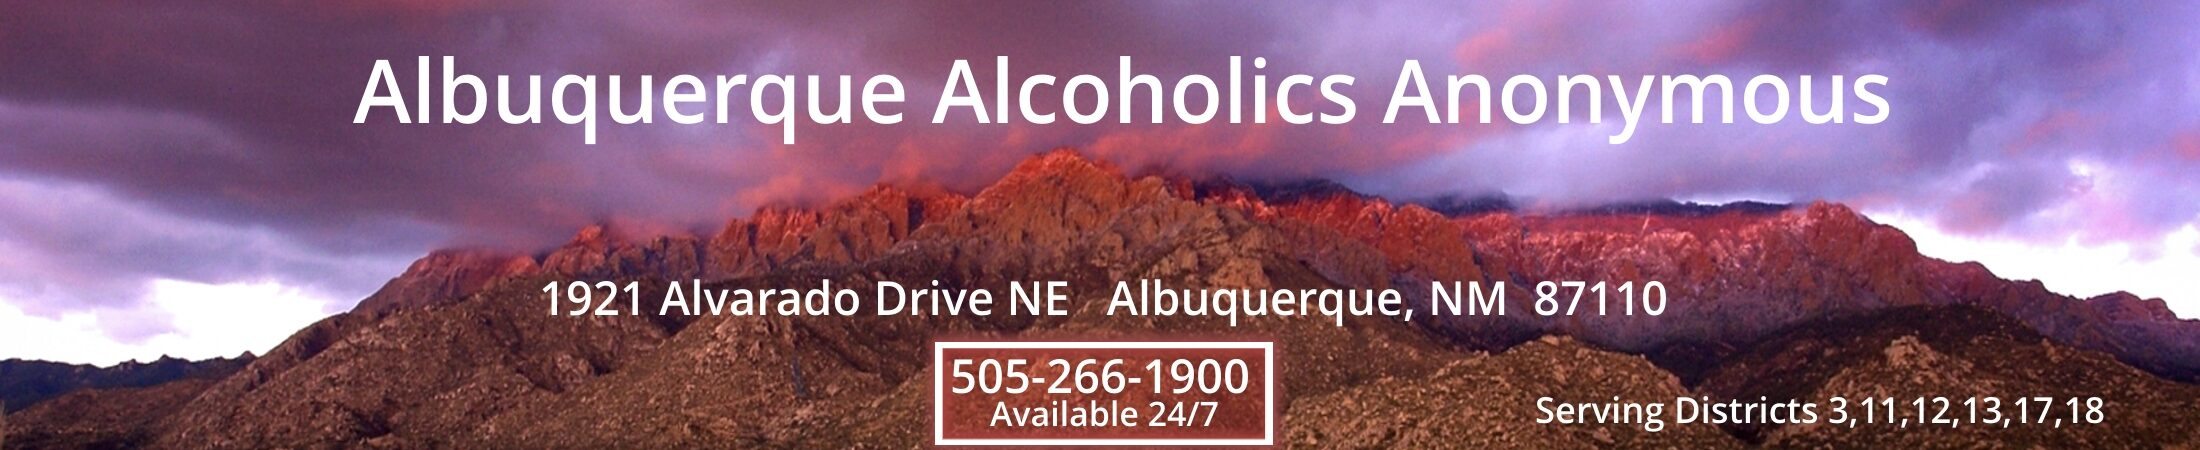 Albuquerque Alcoholics Anonymous